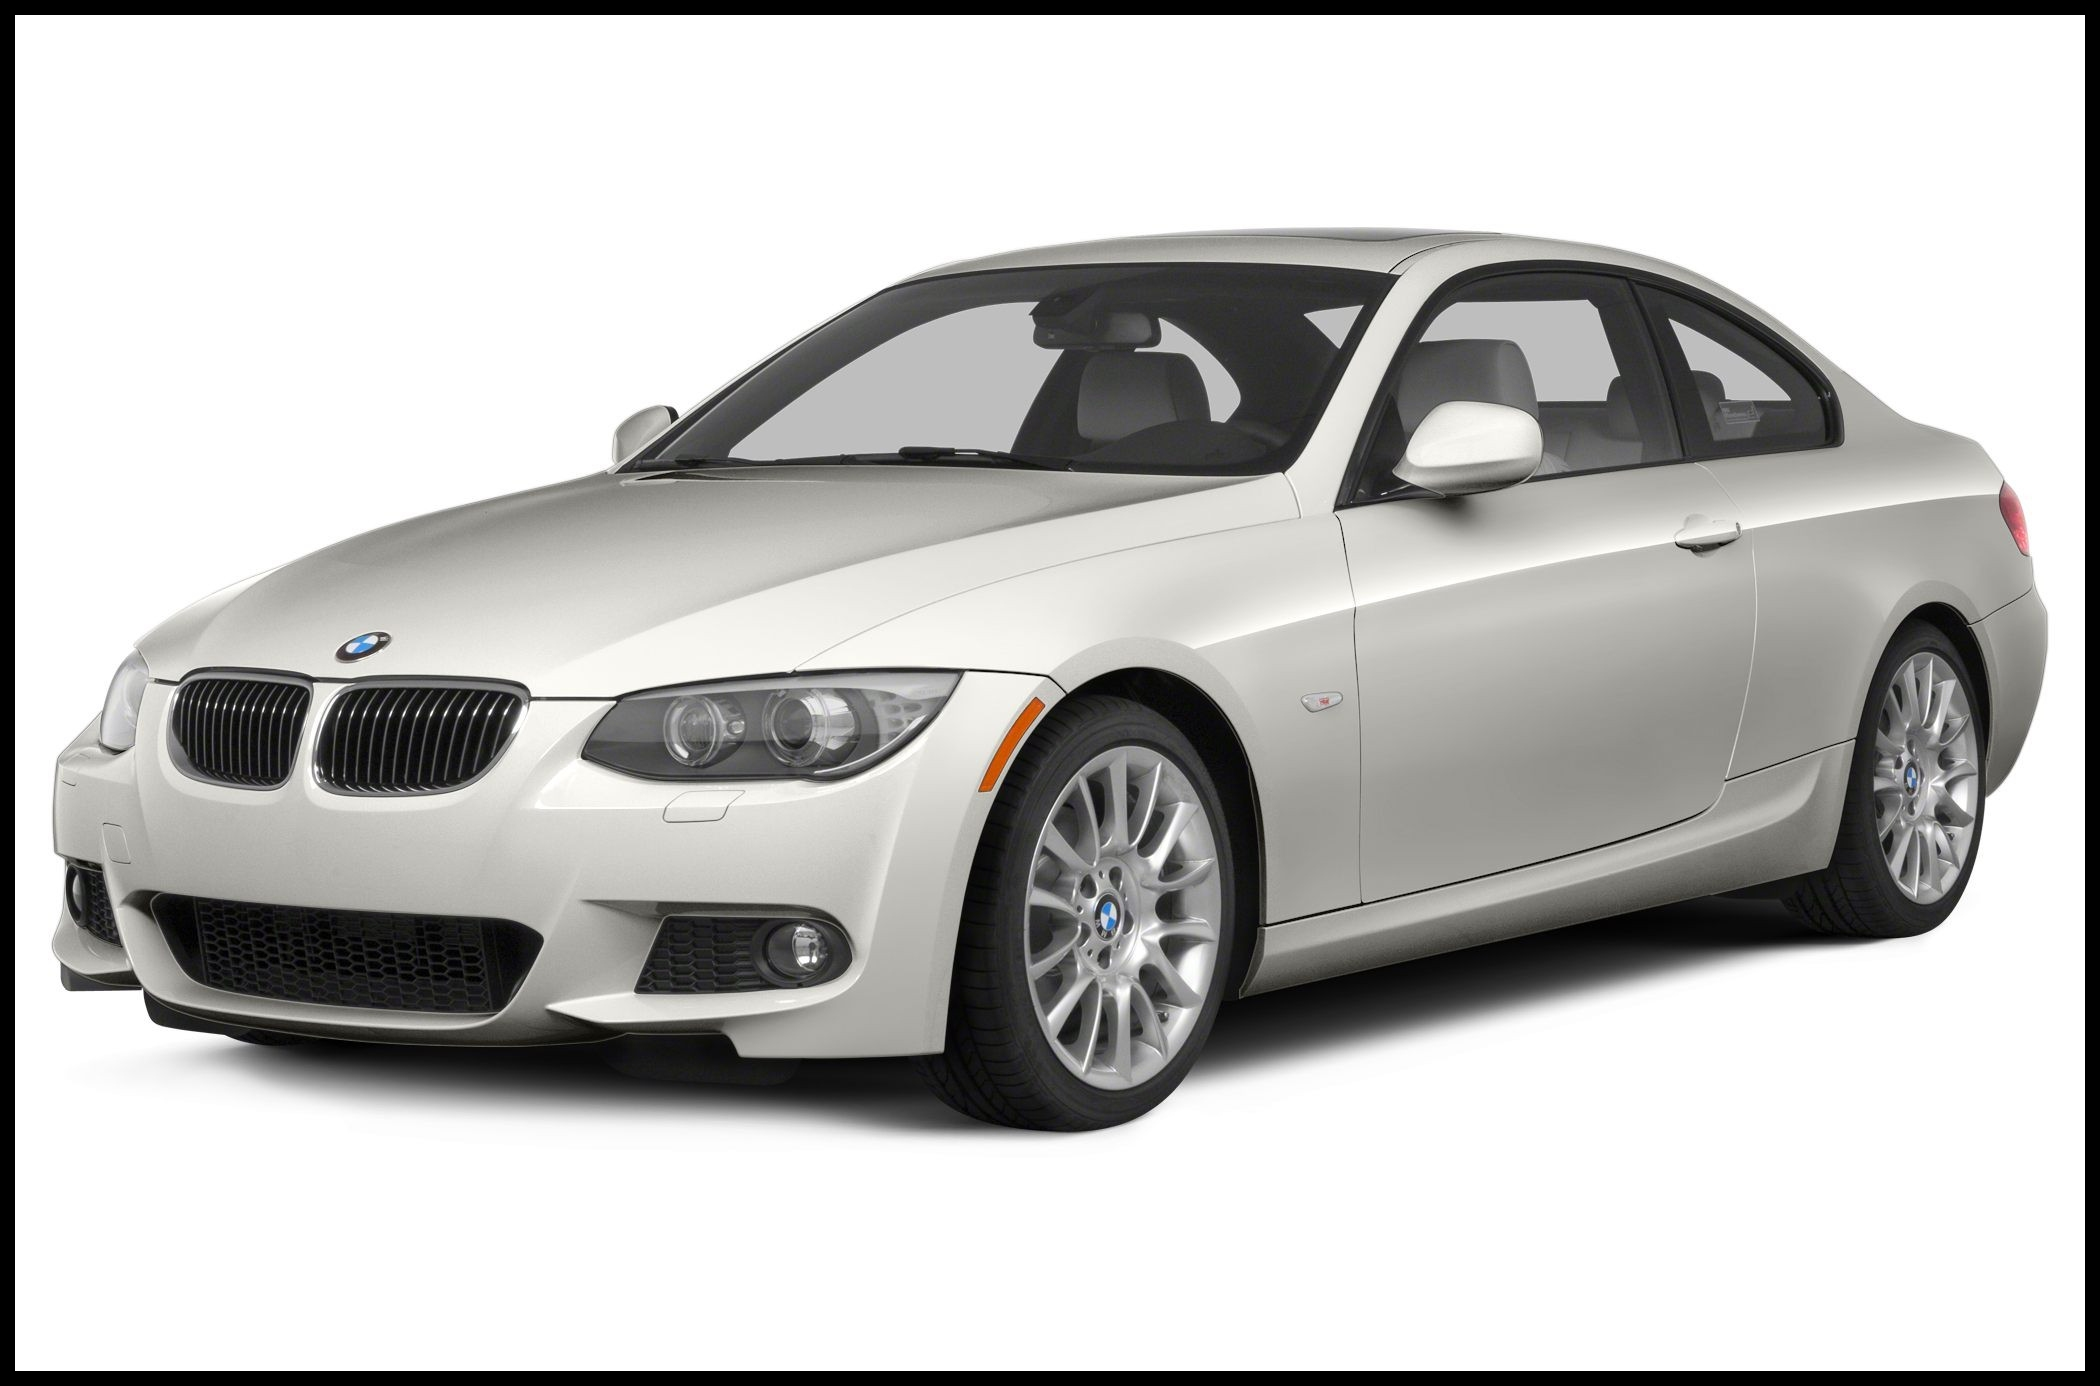 2008 Bmw 328i Coupe Review New 2013 Bmw 328 Review Autoblog